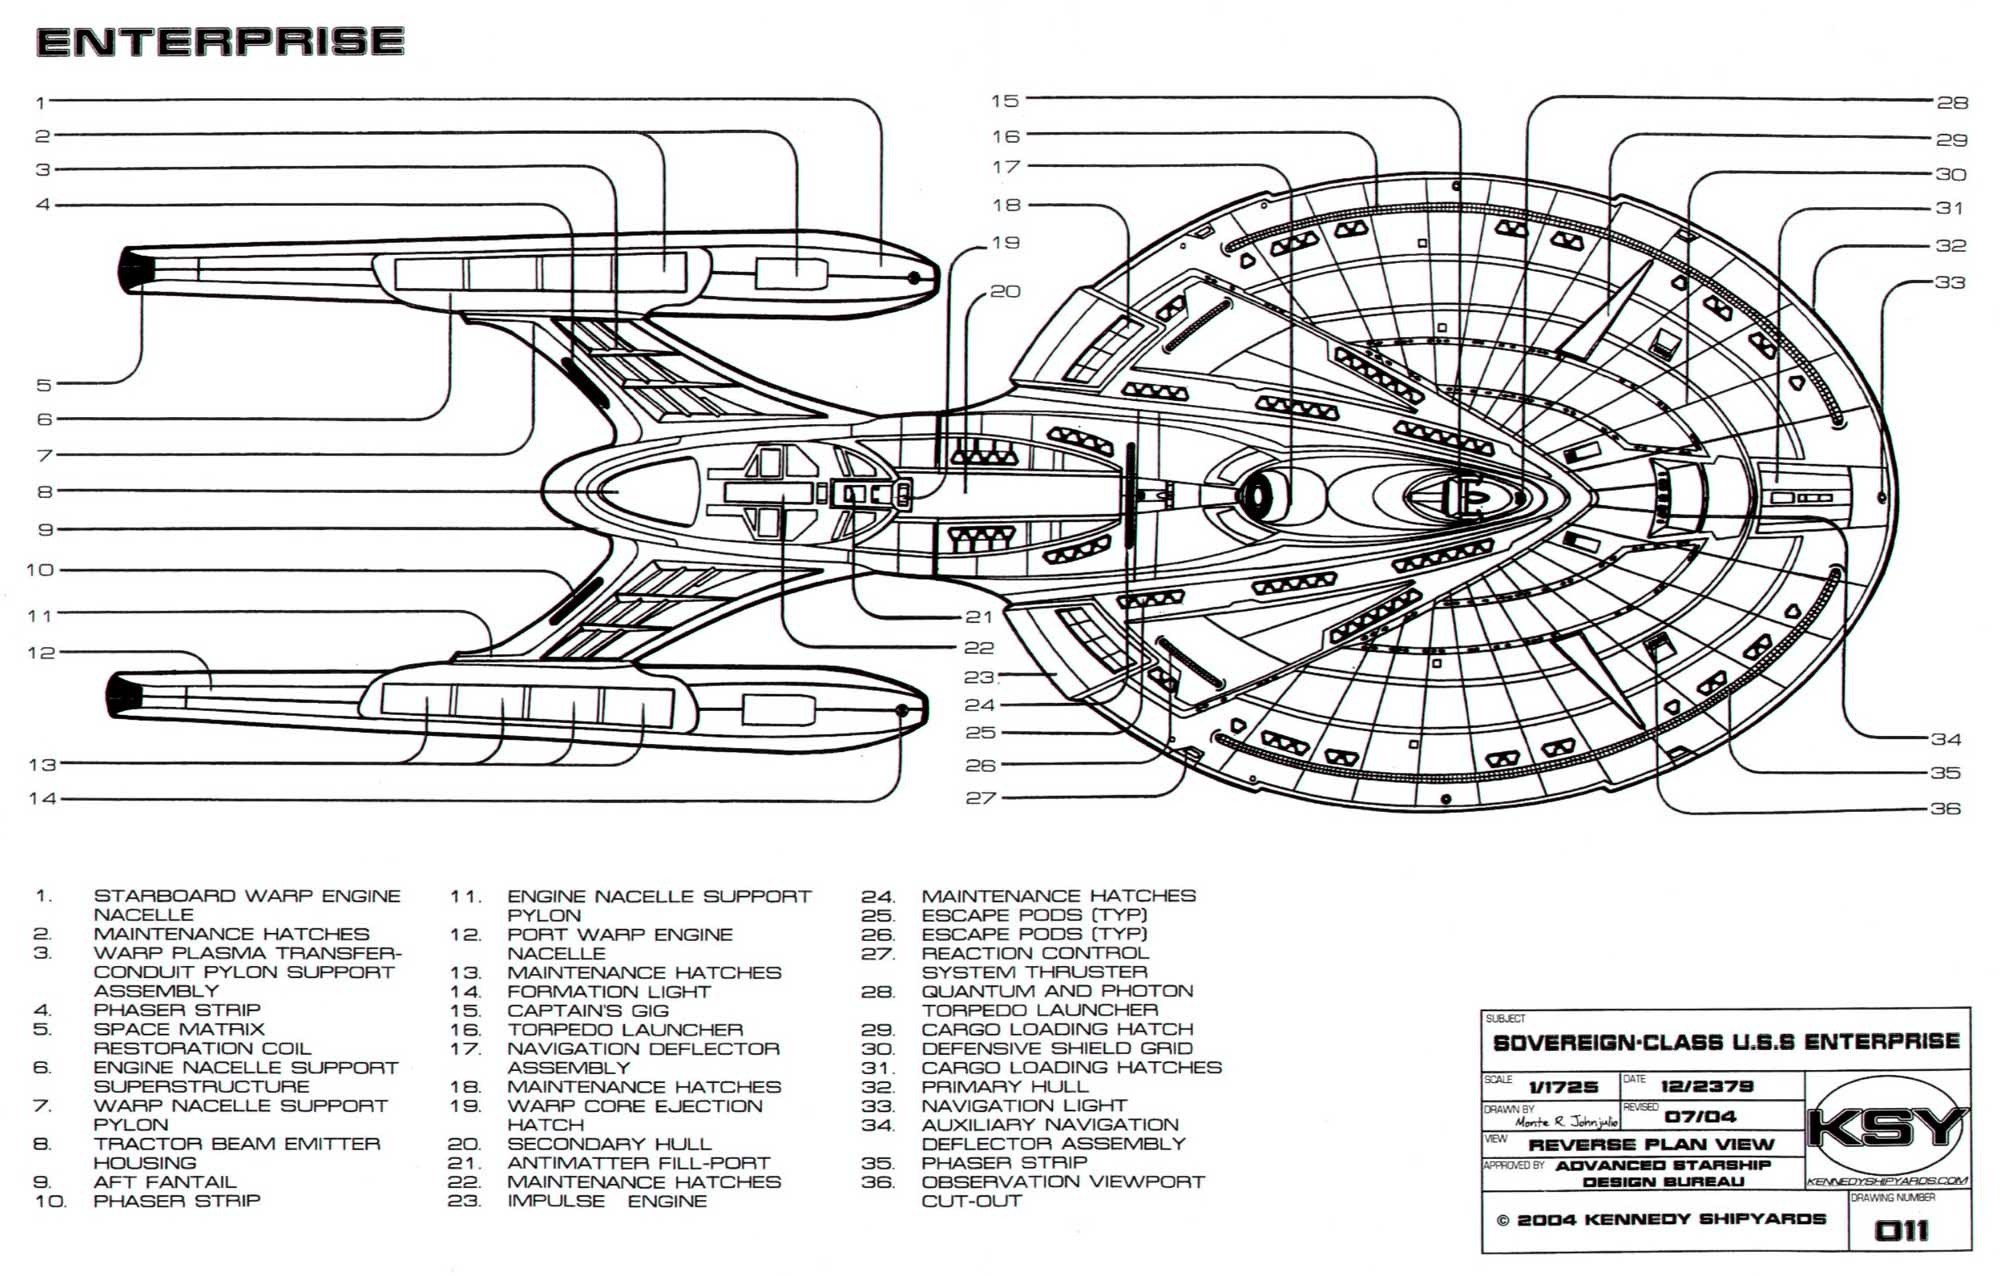 Enterprise E Schematics